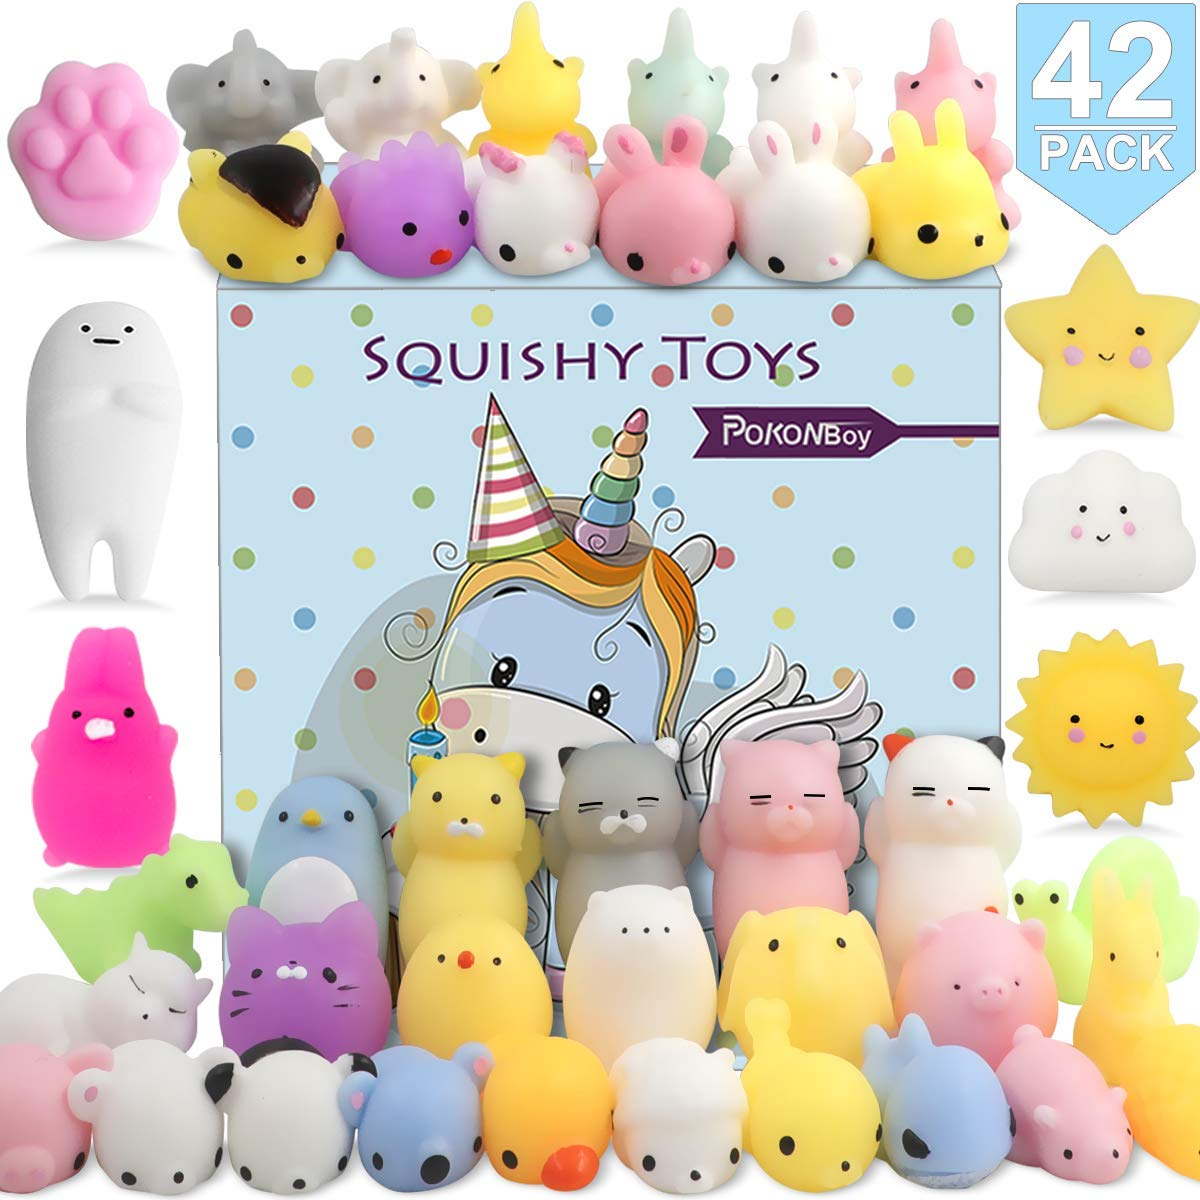 POKONBOY 42 Pack Mochi Squishy Toys Squishies, Cat Panda Unicorn Squishy Mini Kawaii Squishies Birthday Party Favors Cute Animals Stress Relief Toys Carnival Prizes for Kids Boys Girls Adults by POKONBOY